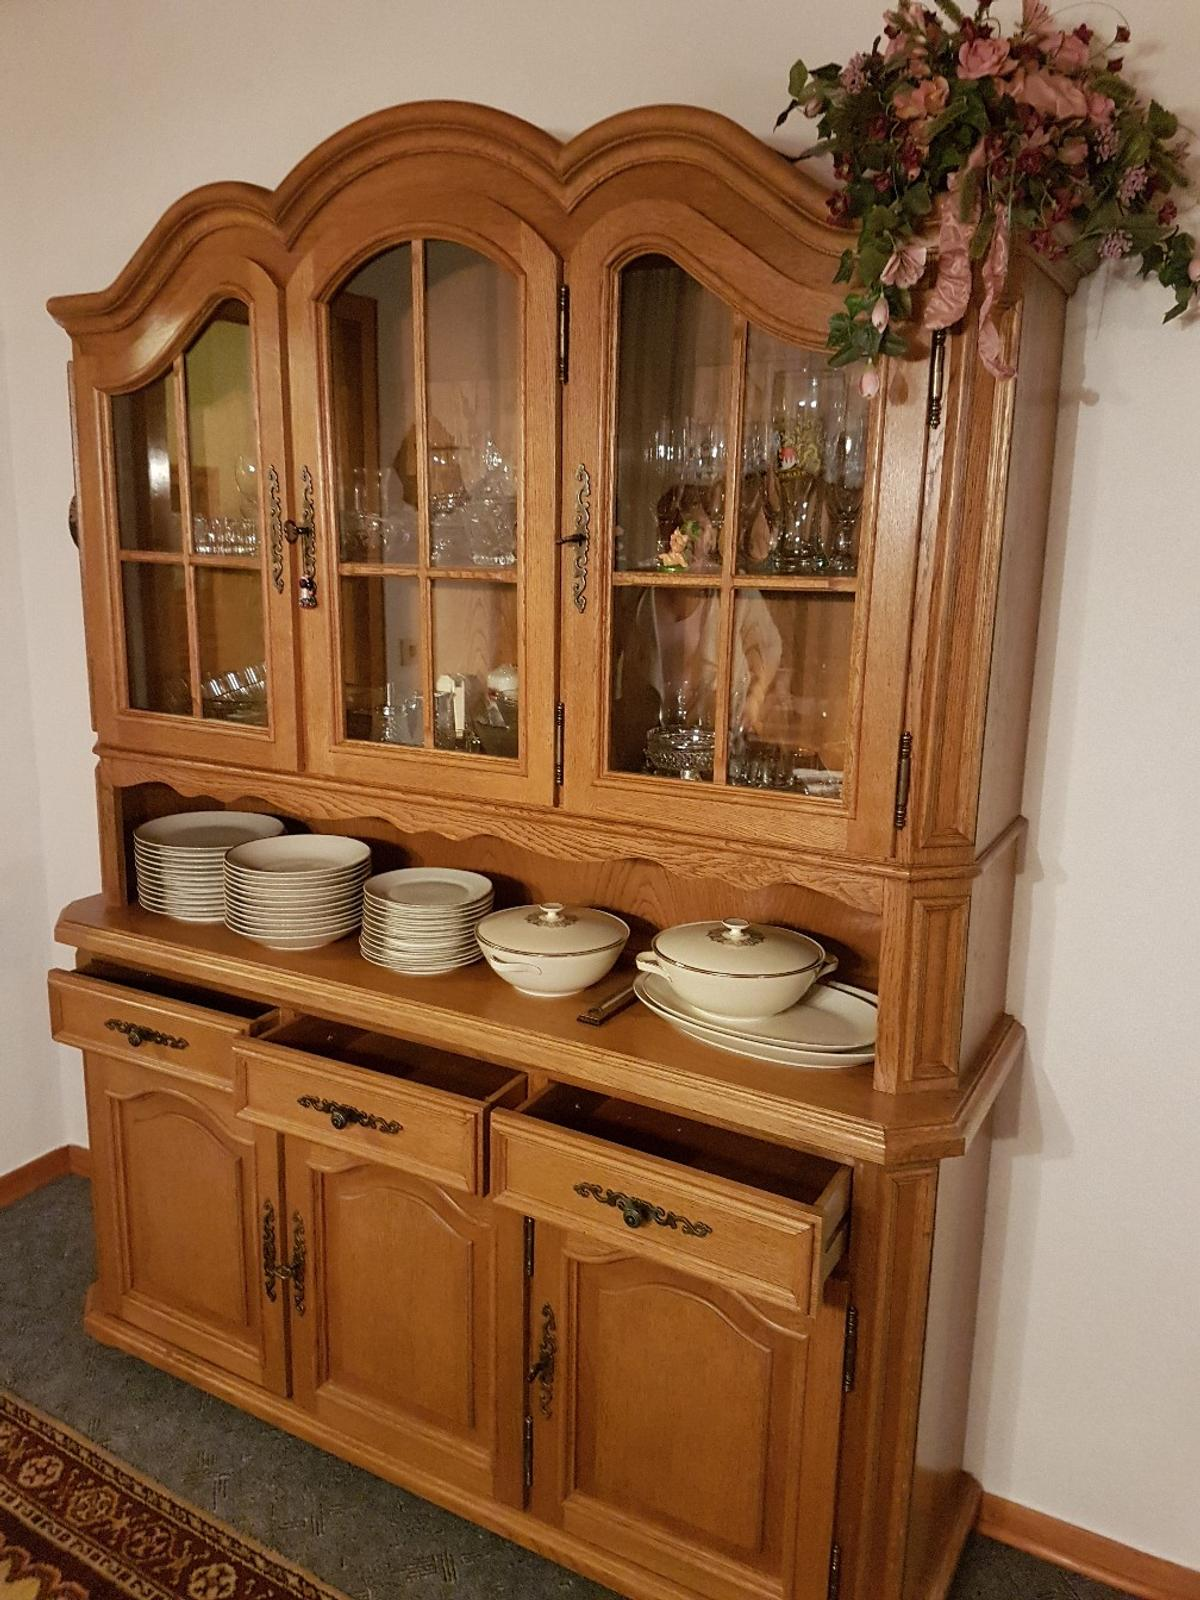 Buffet Schrank Mit Kommode Eiche Massiv In 51647 Gummersbach For